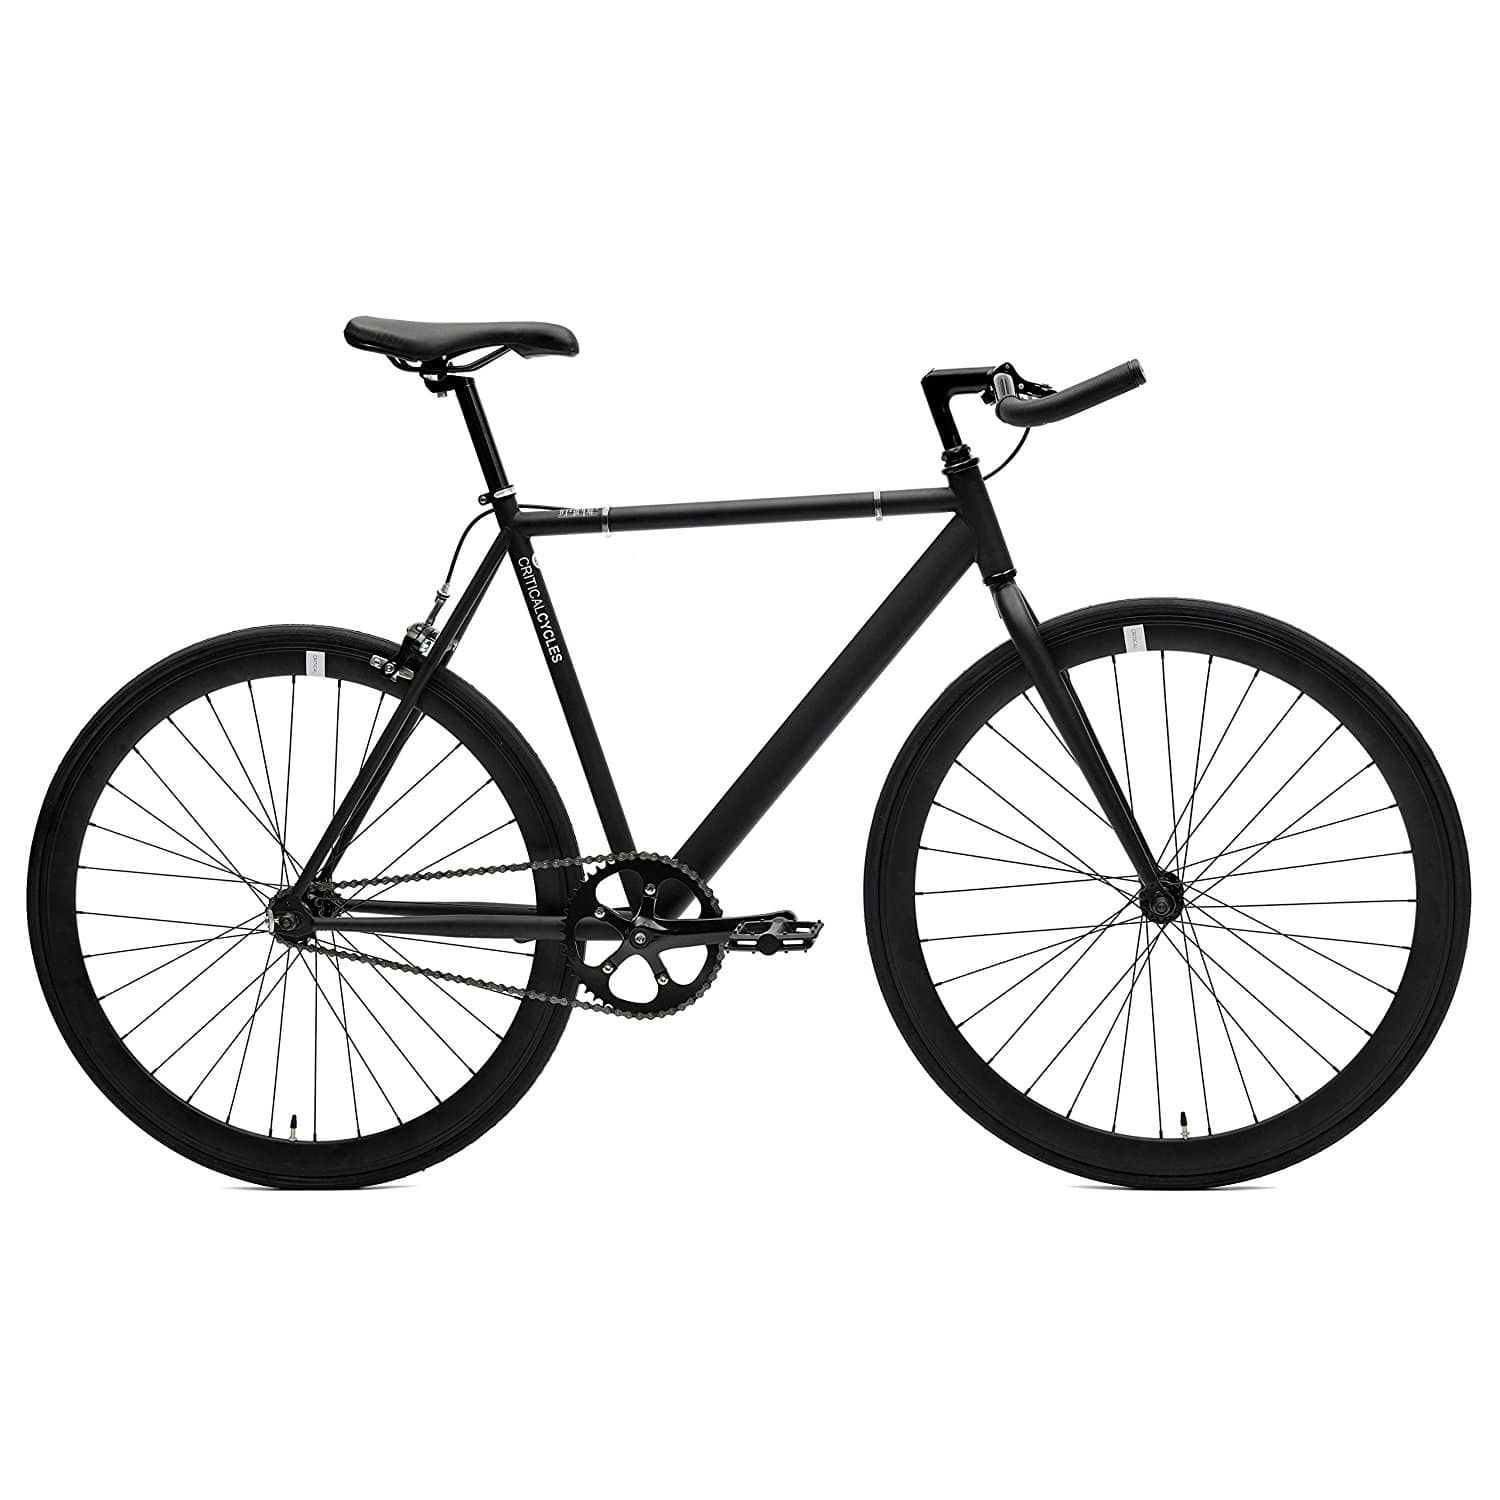 Top 10 Best Critical Cycles In 2020 Reviews Speed Bike Fixed